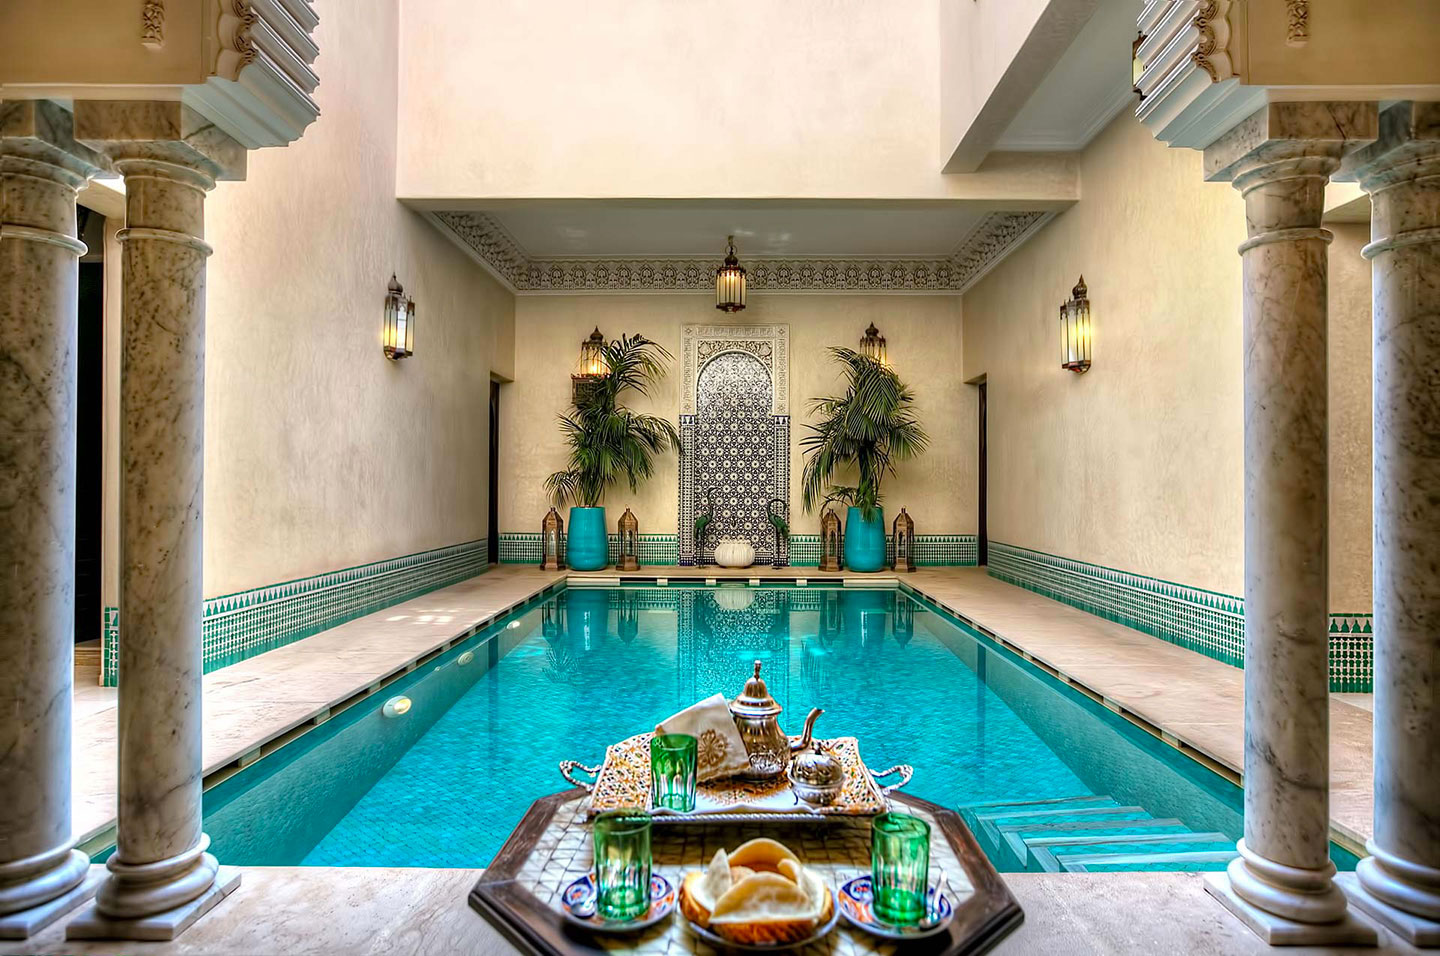 Riad kniza photo marrakech riad photo hotel marrakech - Photo riad marrakech ...